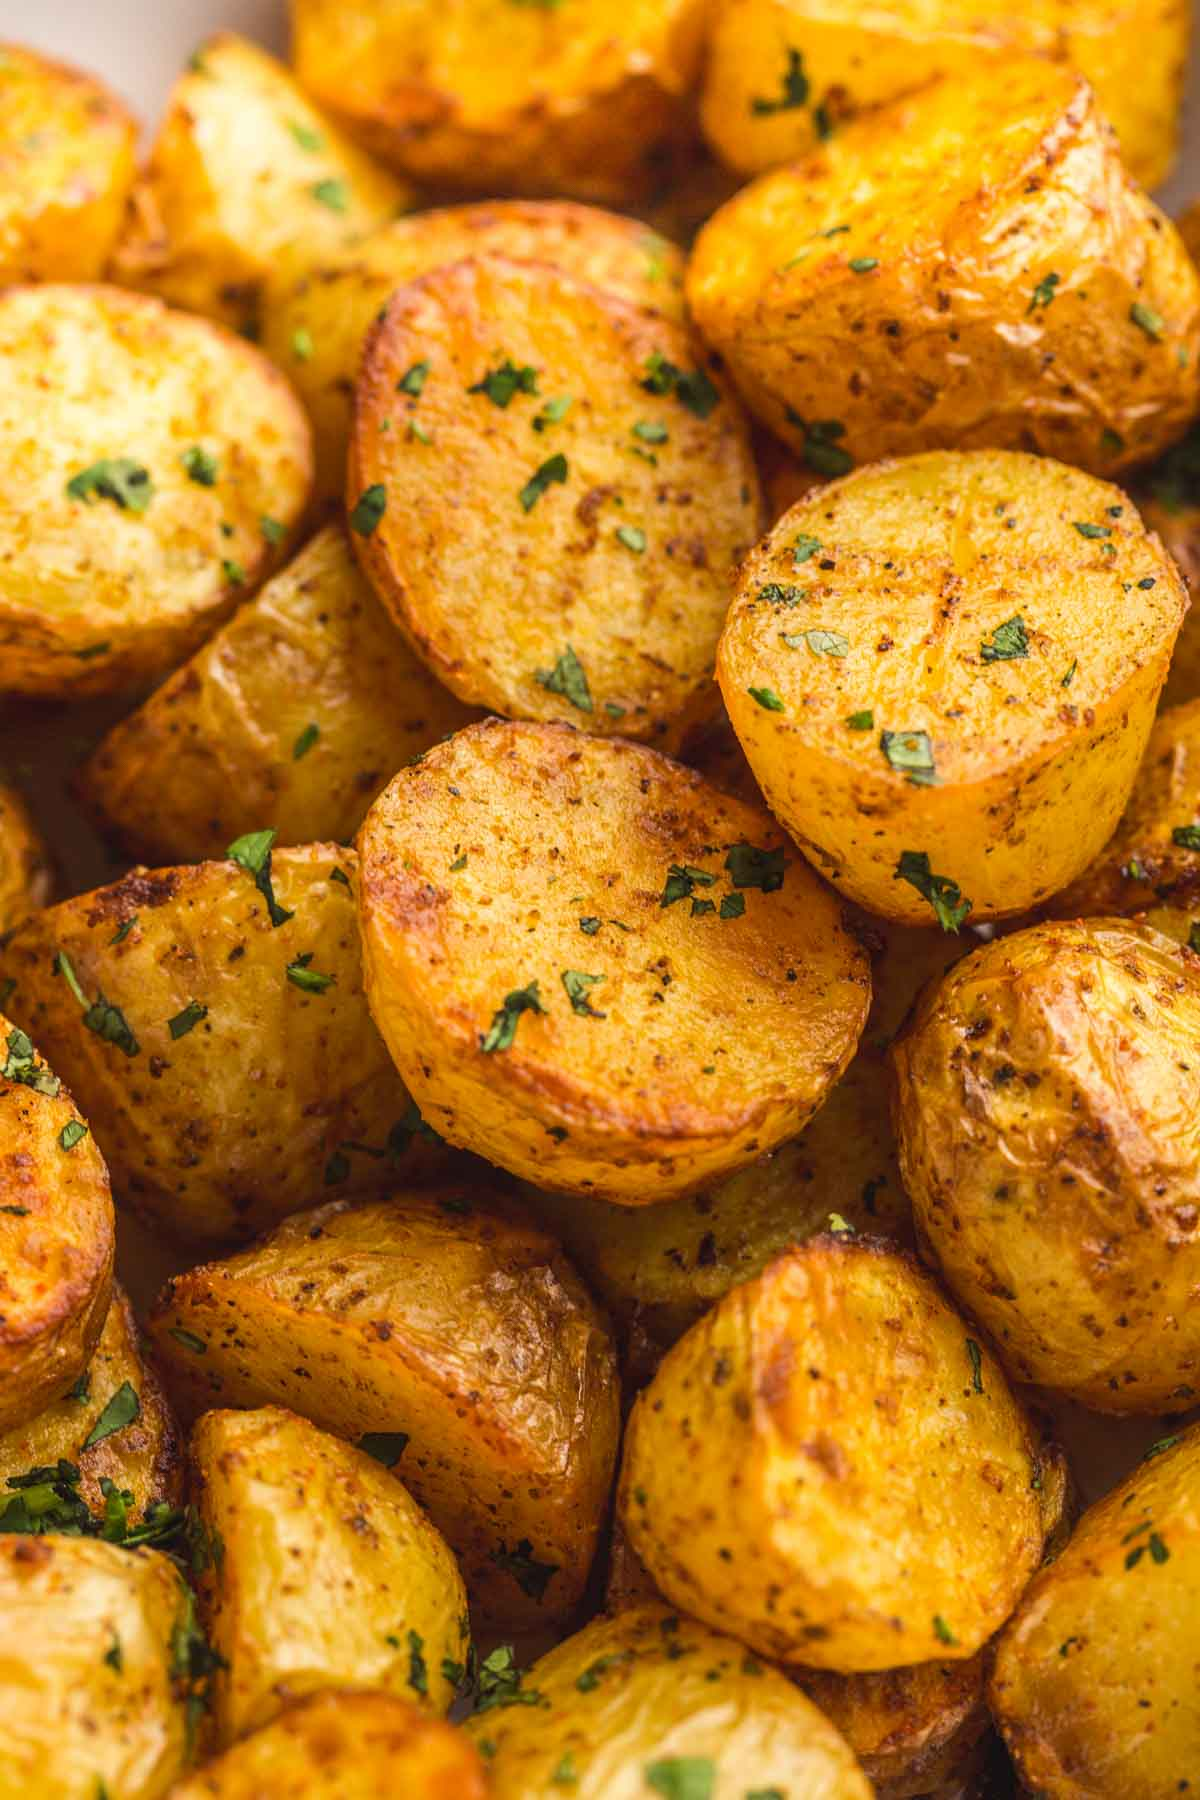 Close up shot of the roasted potatoes